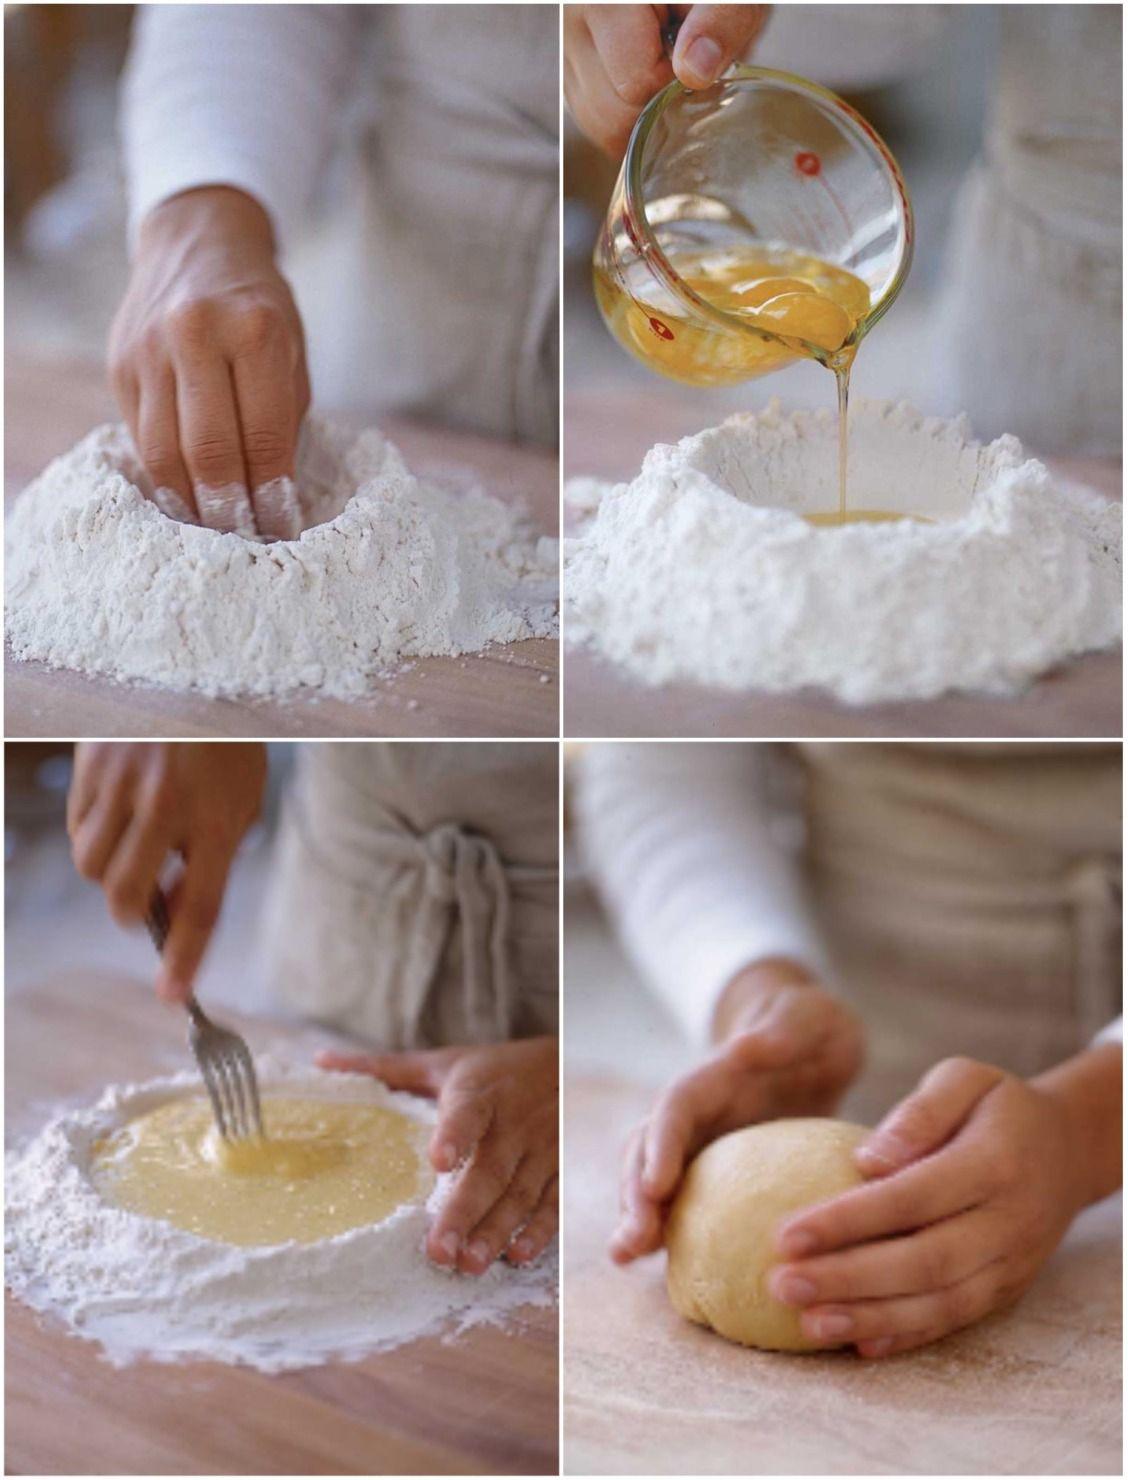 How to make homemade pasta dough by hand